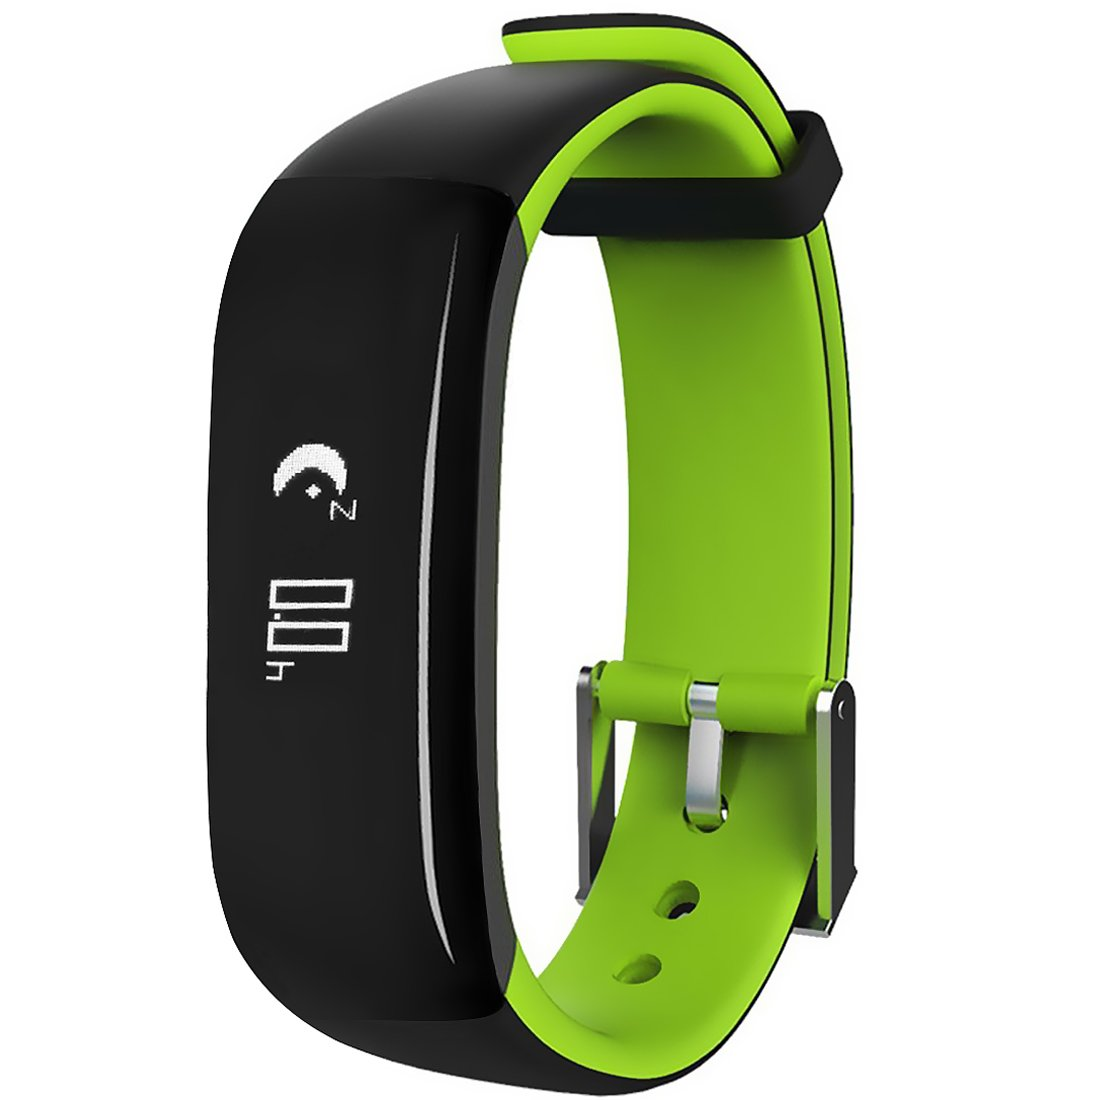 Fitness Tracker, Waterproof Sport Smart Bracelet with Heart Rate/Blood Pressure/Sleep Monitor for Teenager and Adult, Green